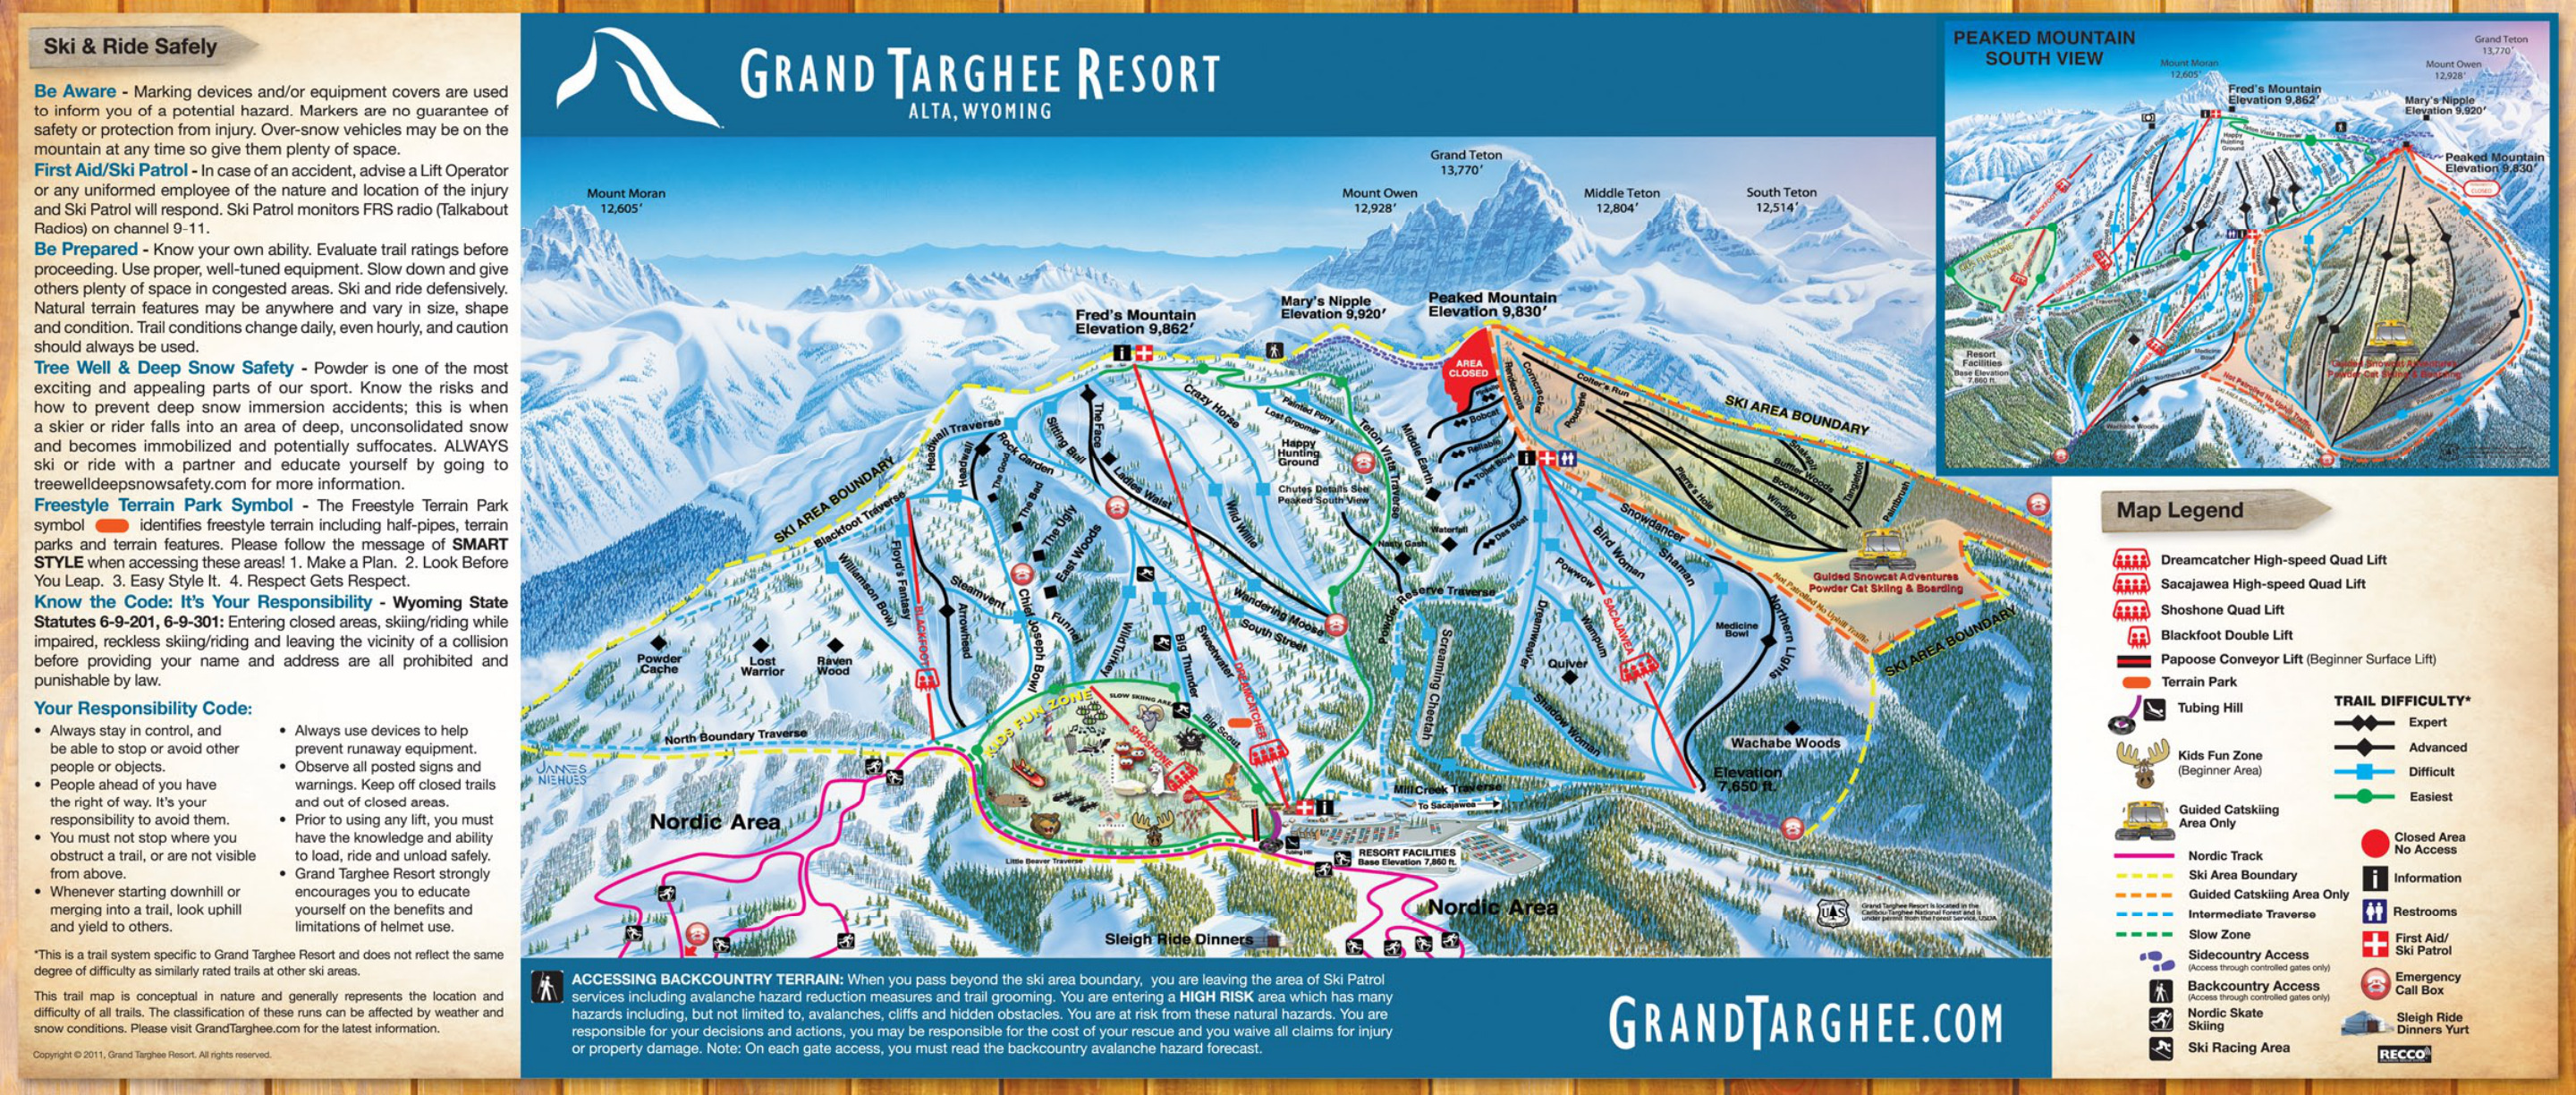 grand targhee ski resort - skimap